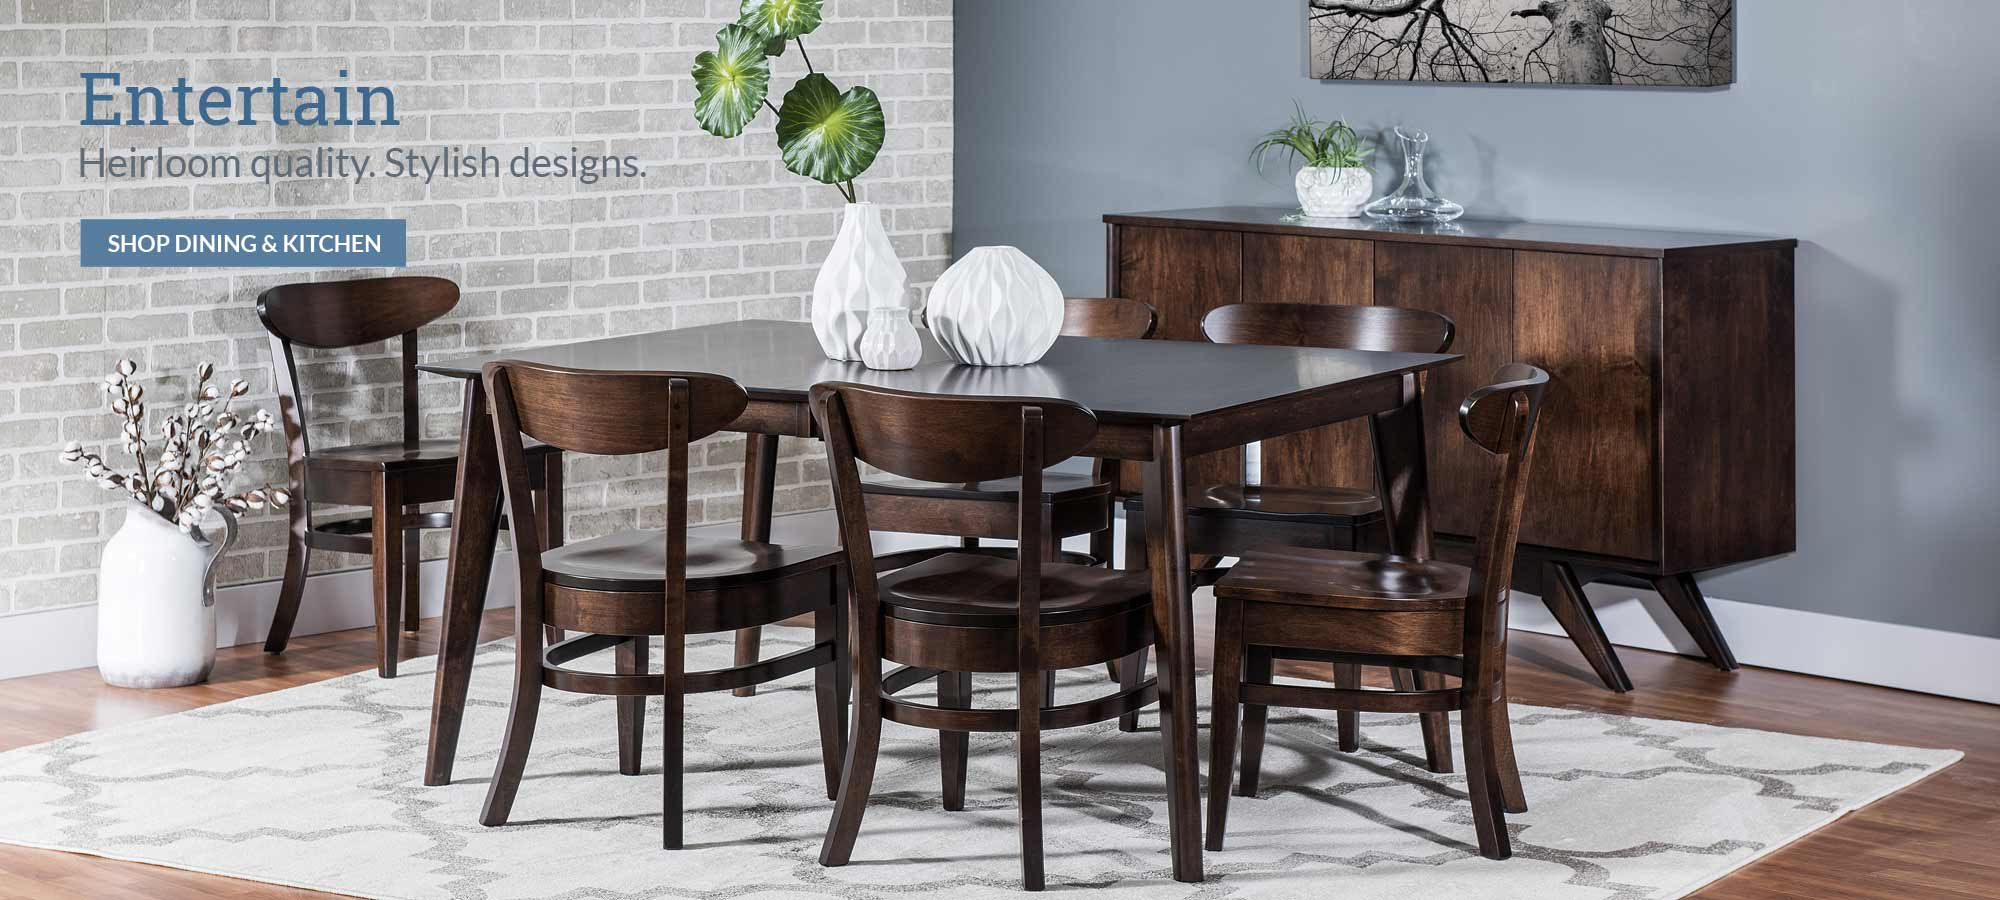 Mattie Lu - Custom Solid Wood Dining Furniture